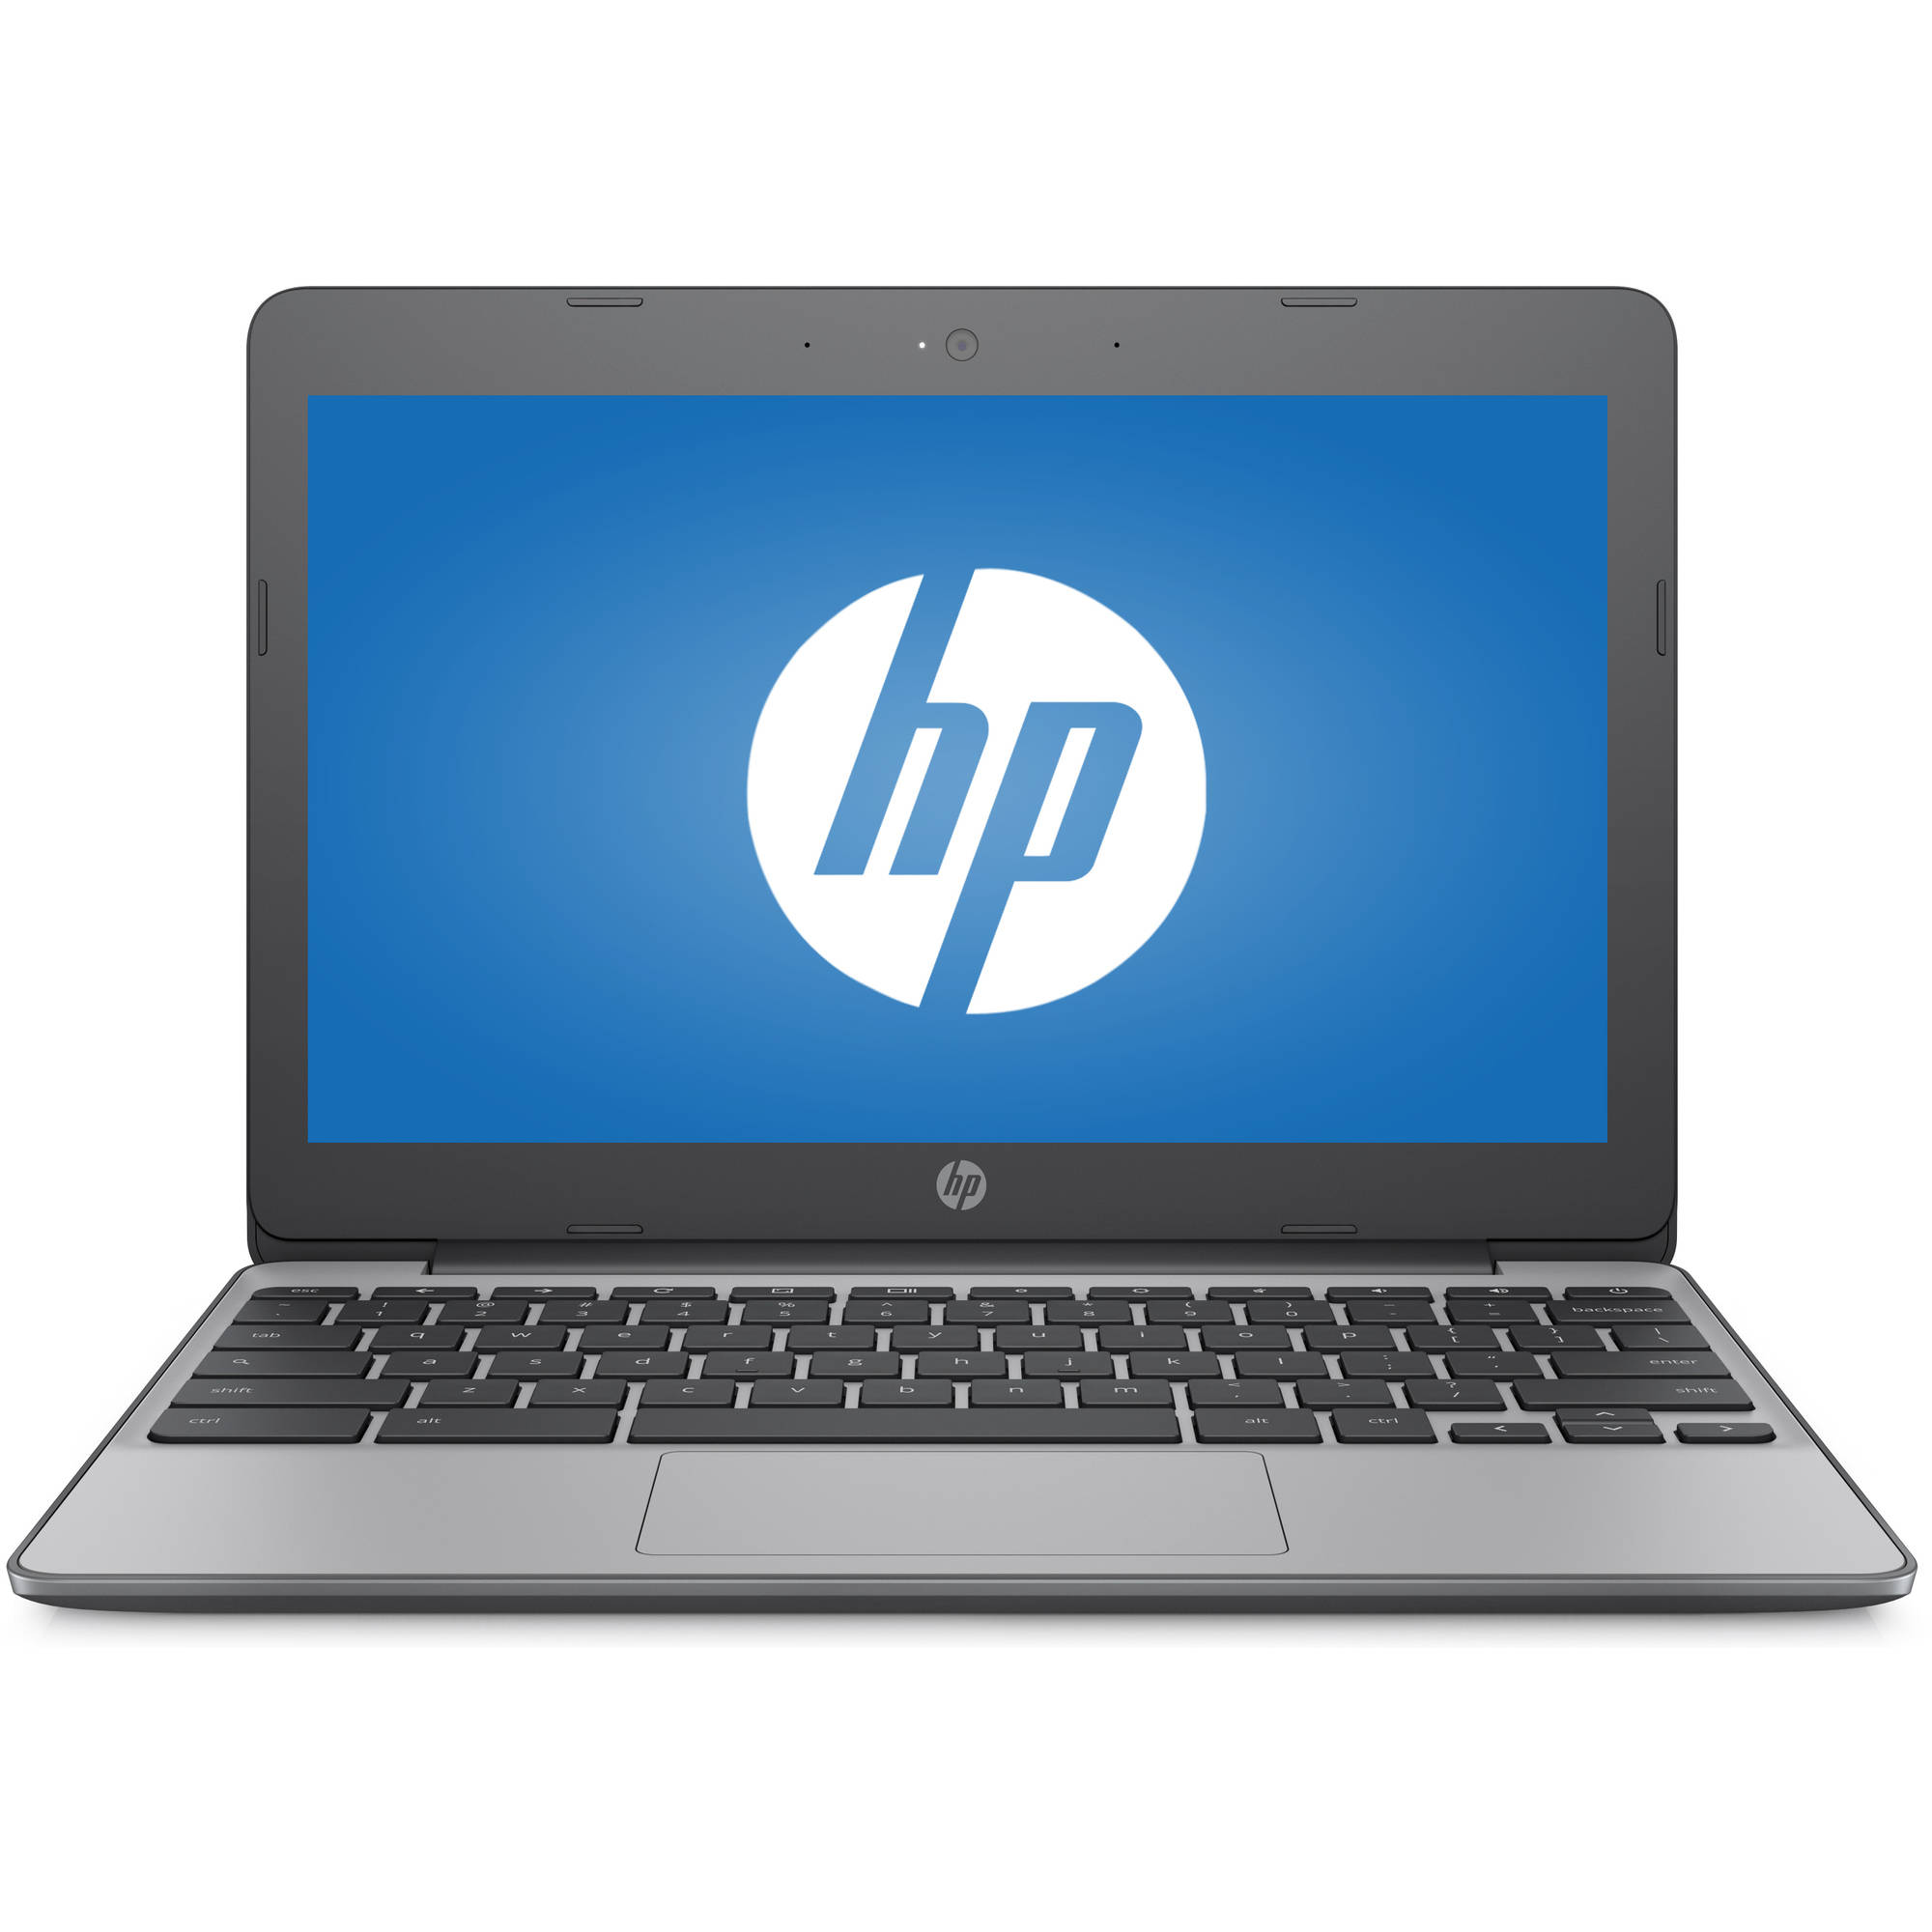 "HP 11-v010wm 11.6"" Chromebook, Chrome, Intel Celeron N3060 Processor, 4GB RAM, 16GB"